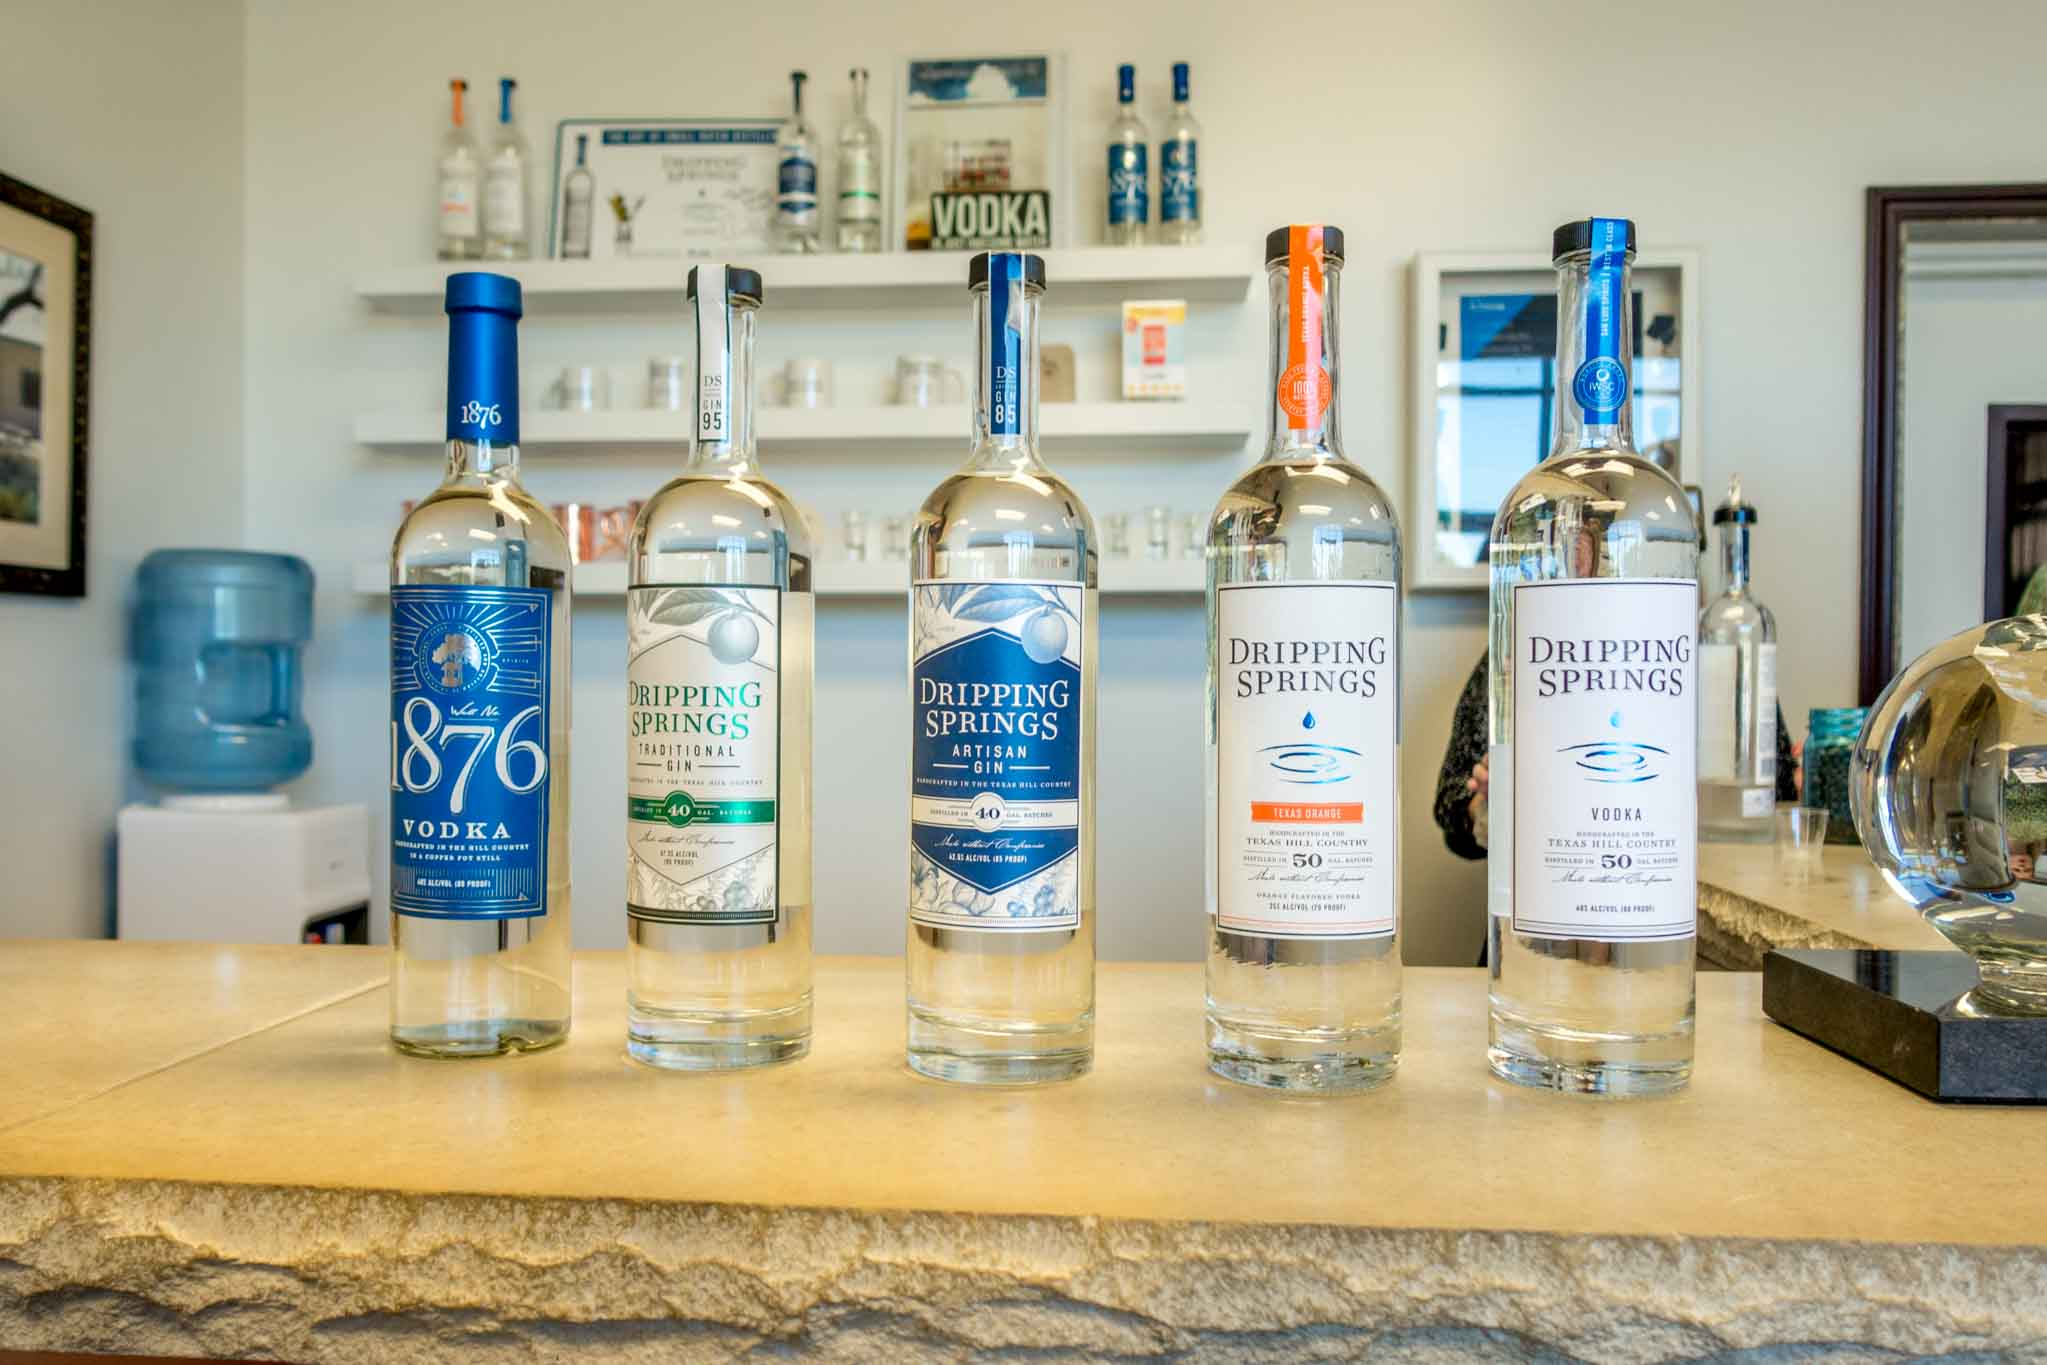 Dripping Springs vodkas and gins from Dripping Springs, Texas